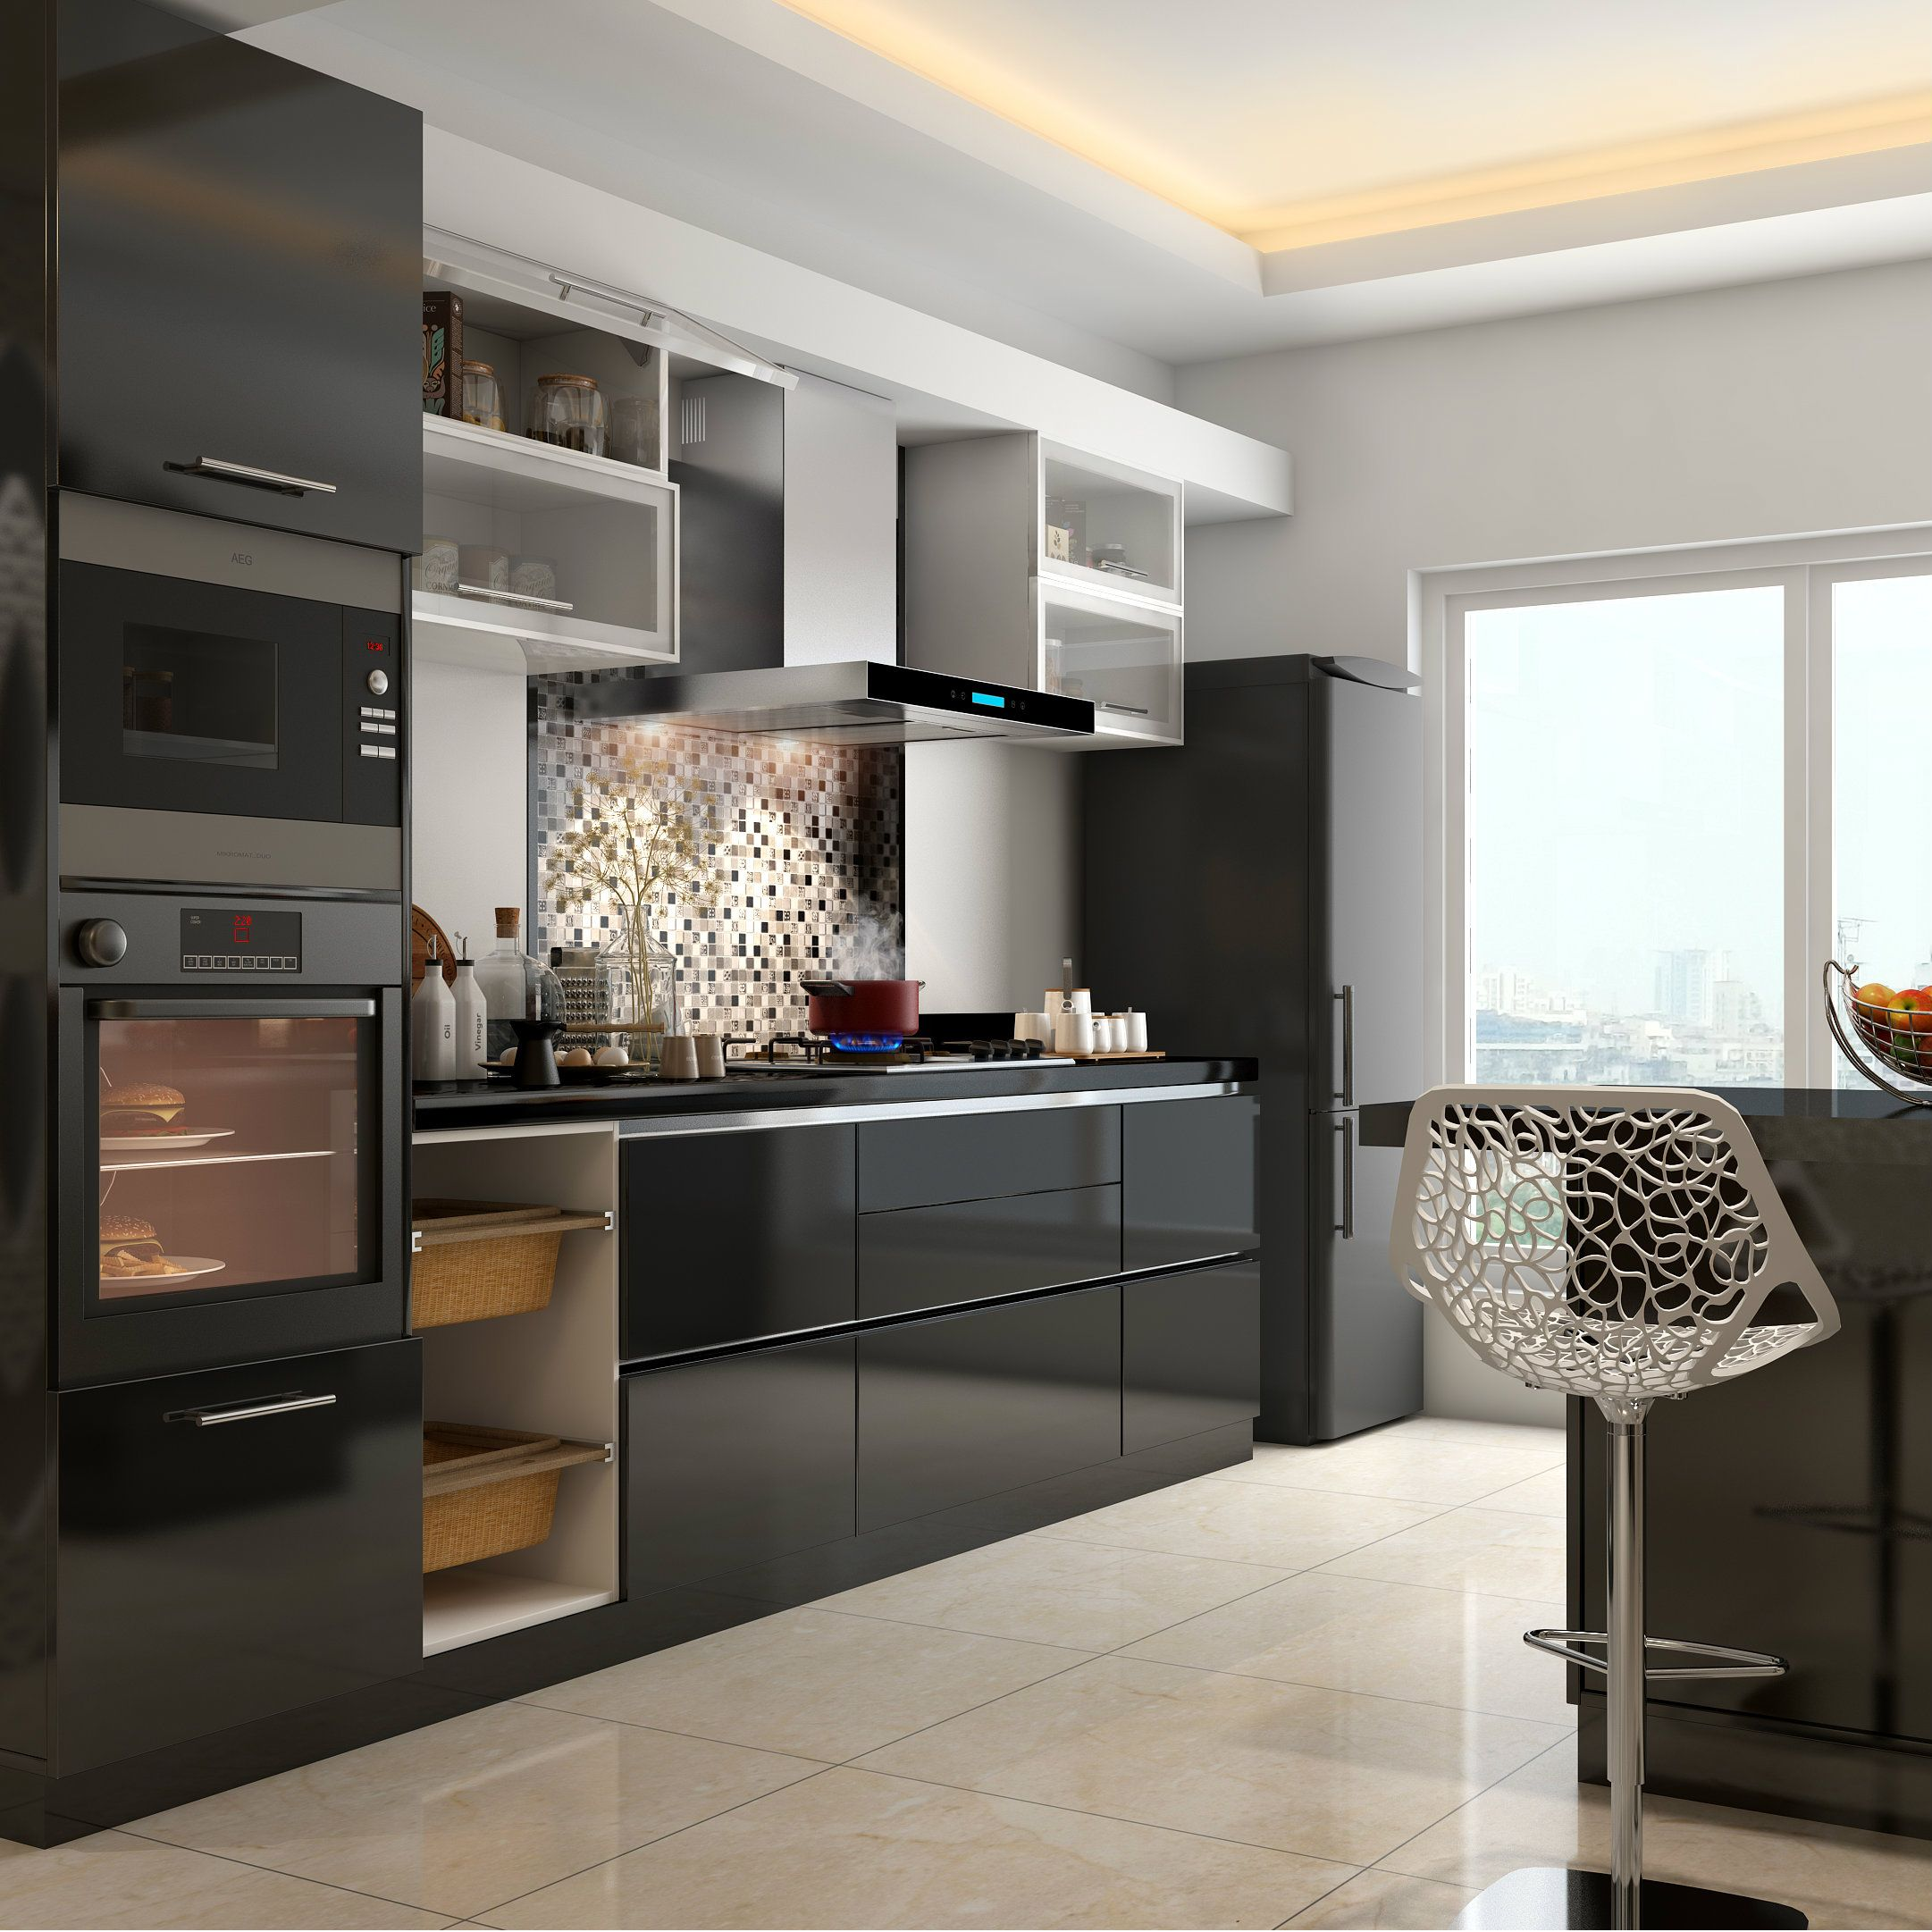 Built In Kitchen Cupboards Designs: A Sleek Black Modular Kitchen With Built In Appliances